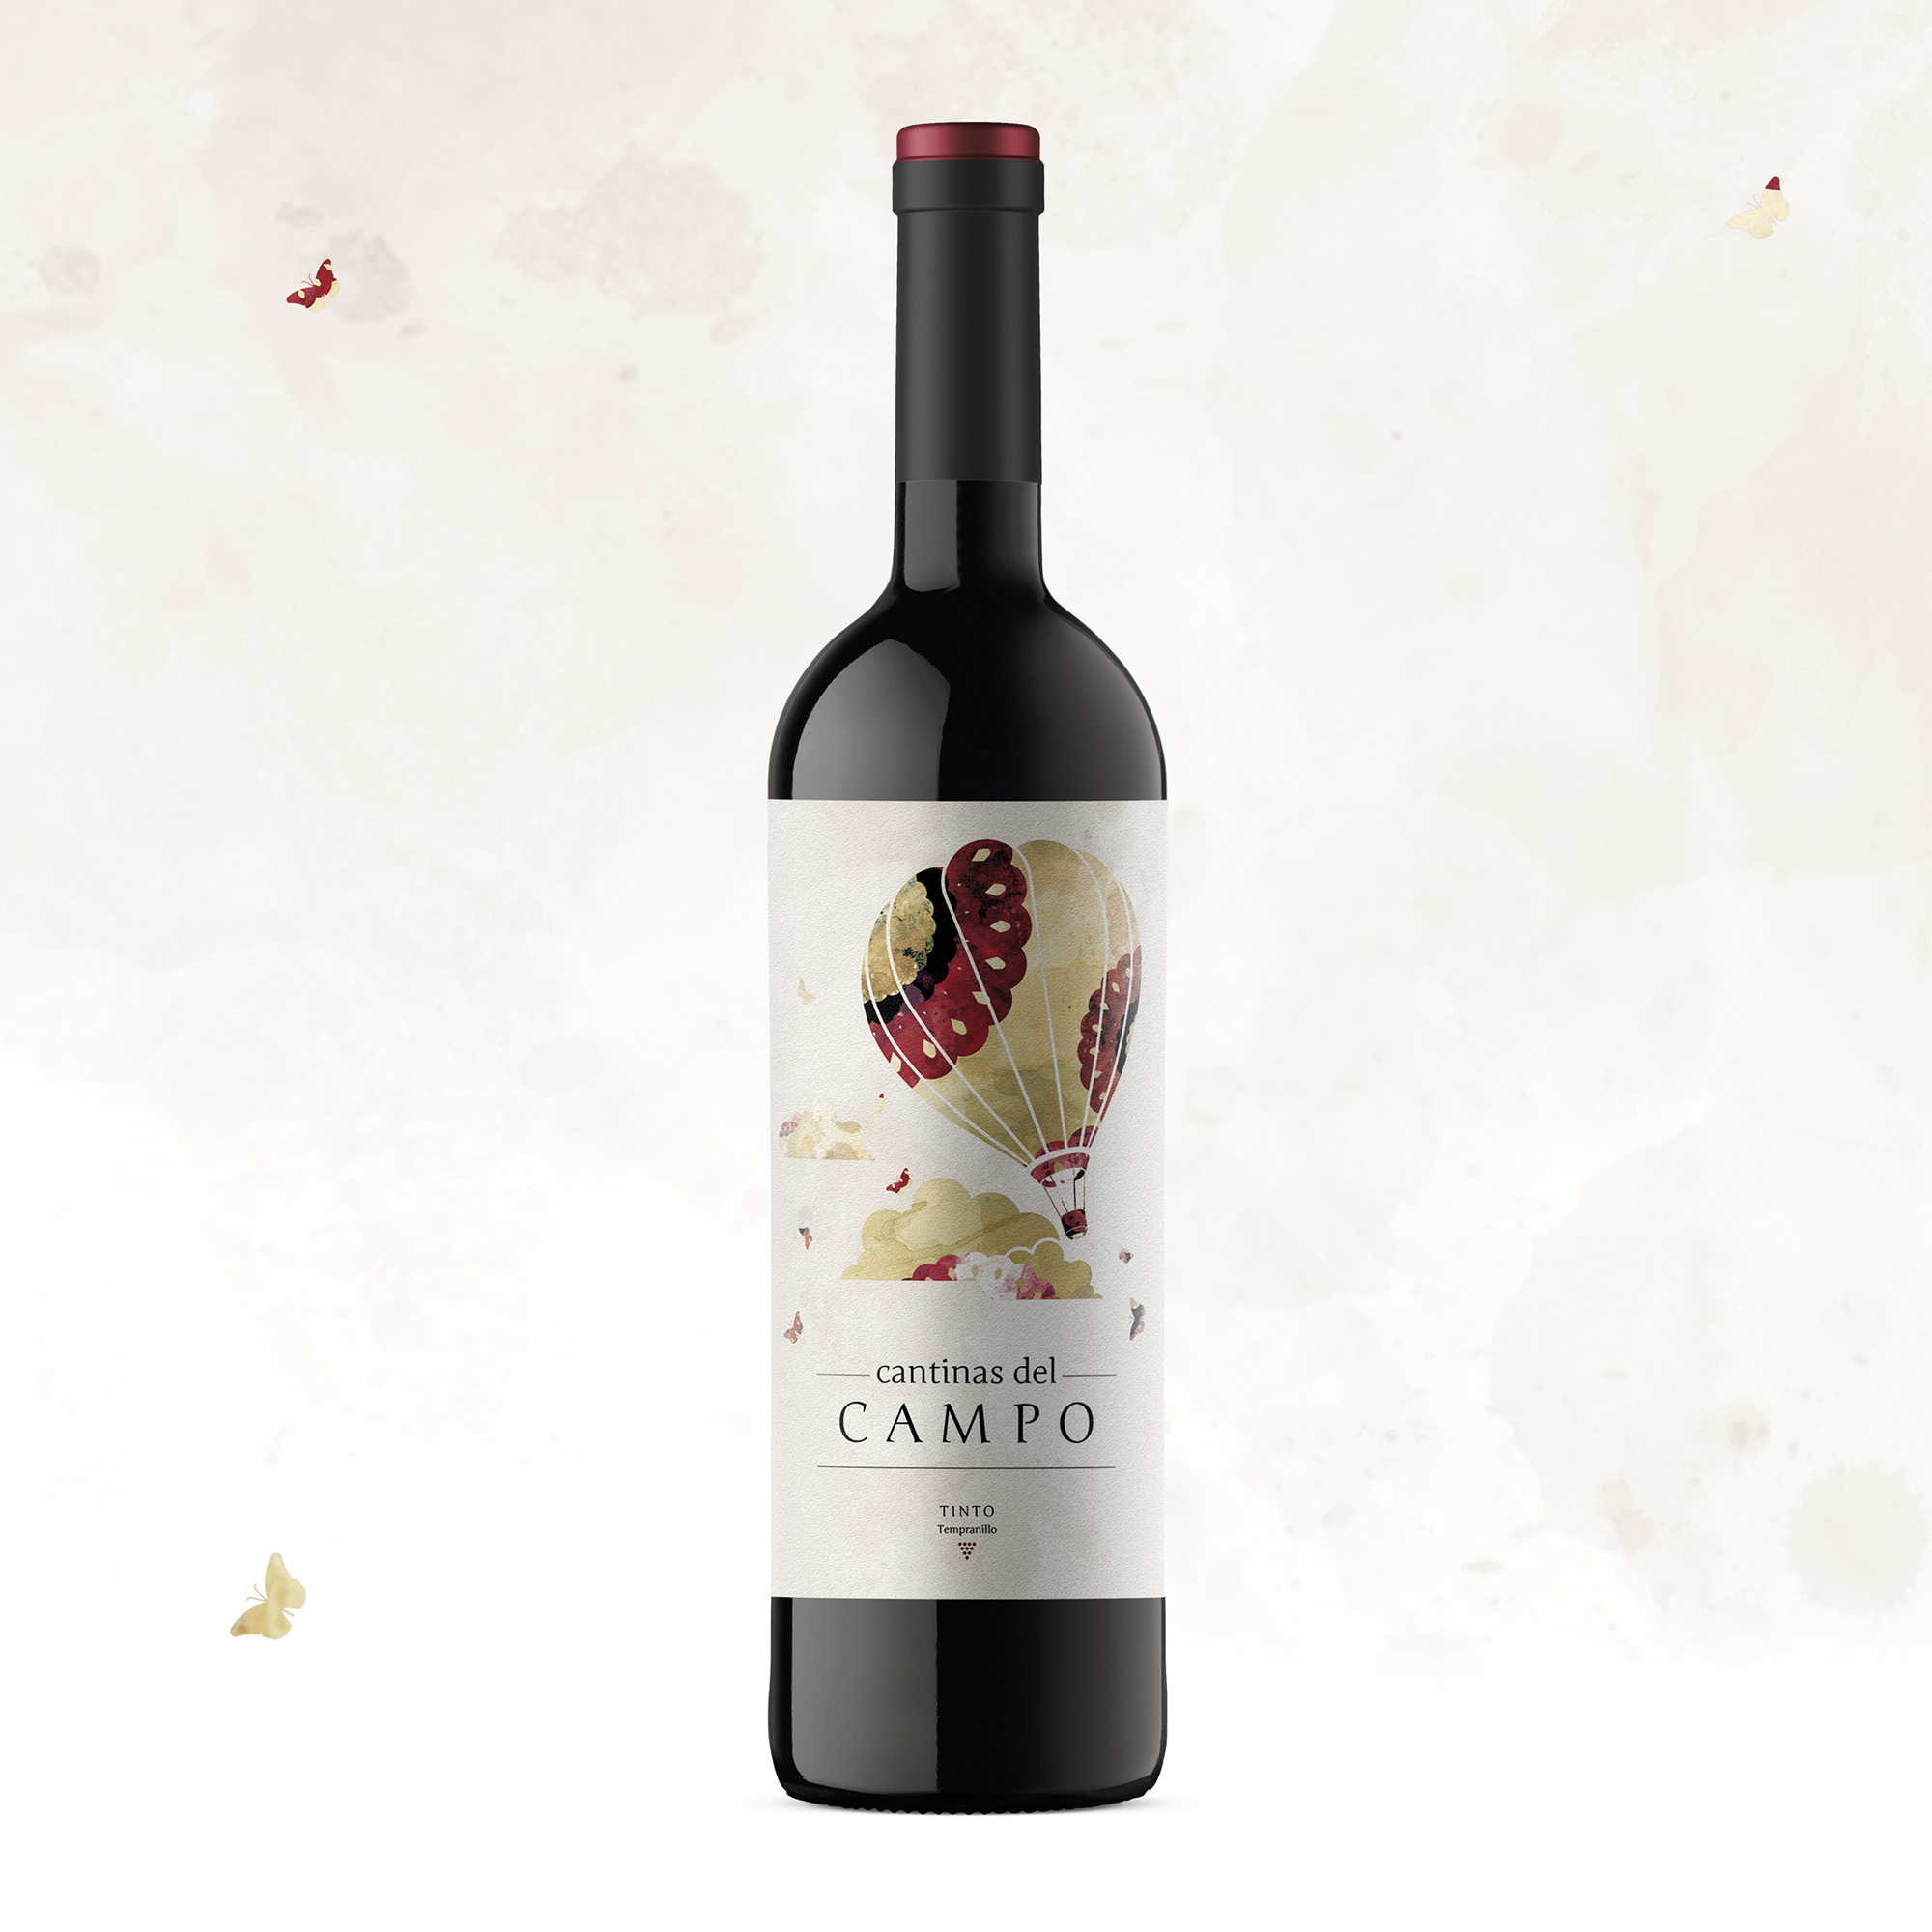 CANTINAS DEL CAMPO WINE LABEL DESIGN